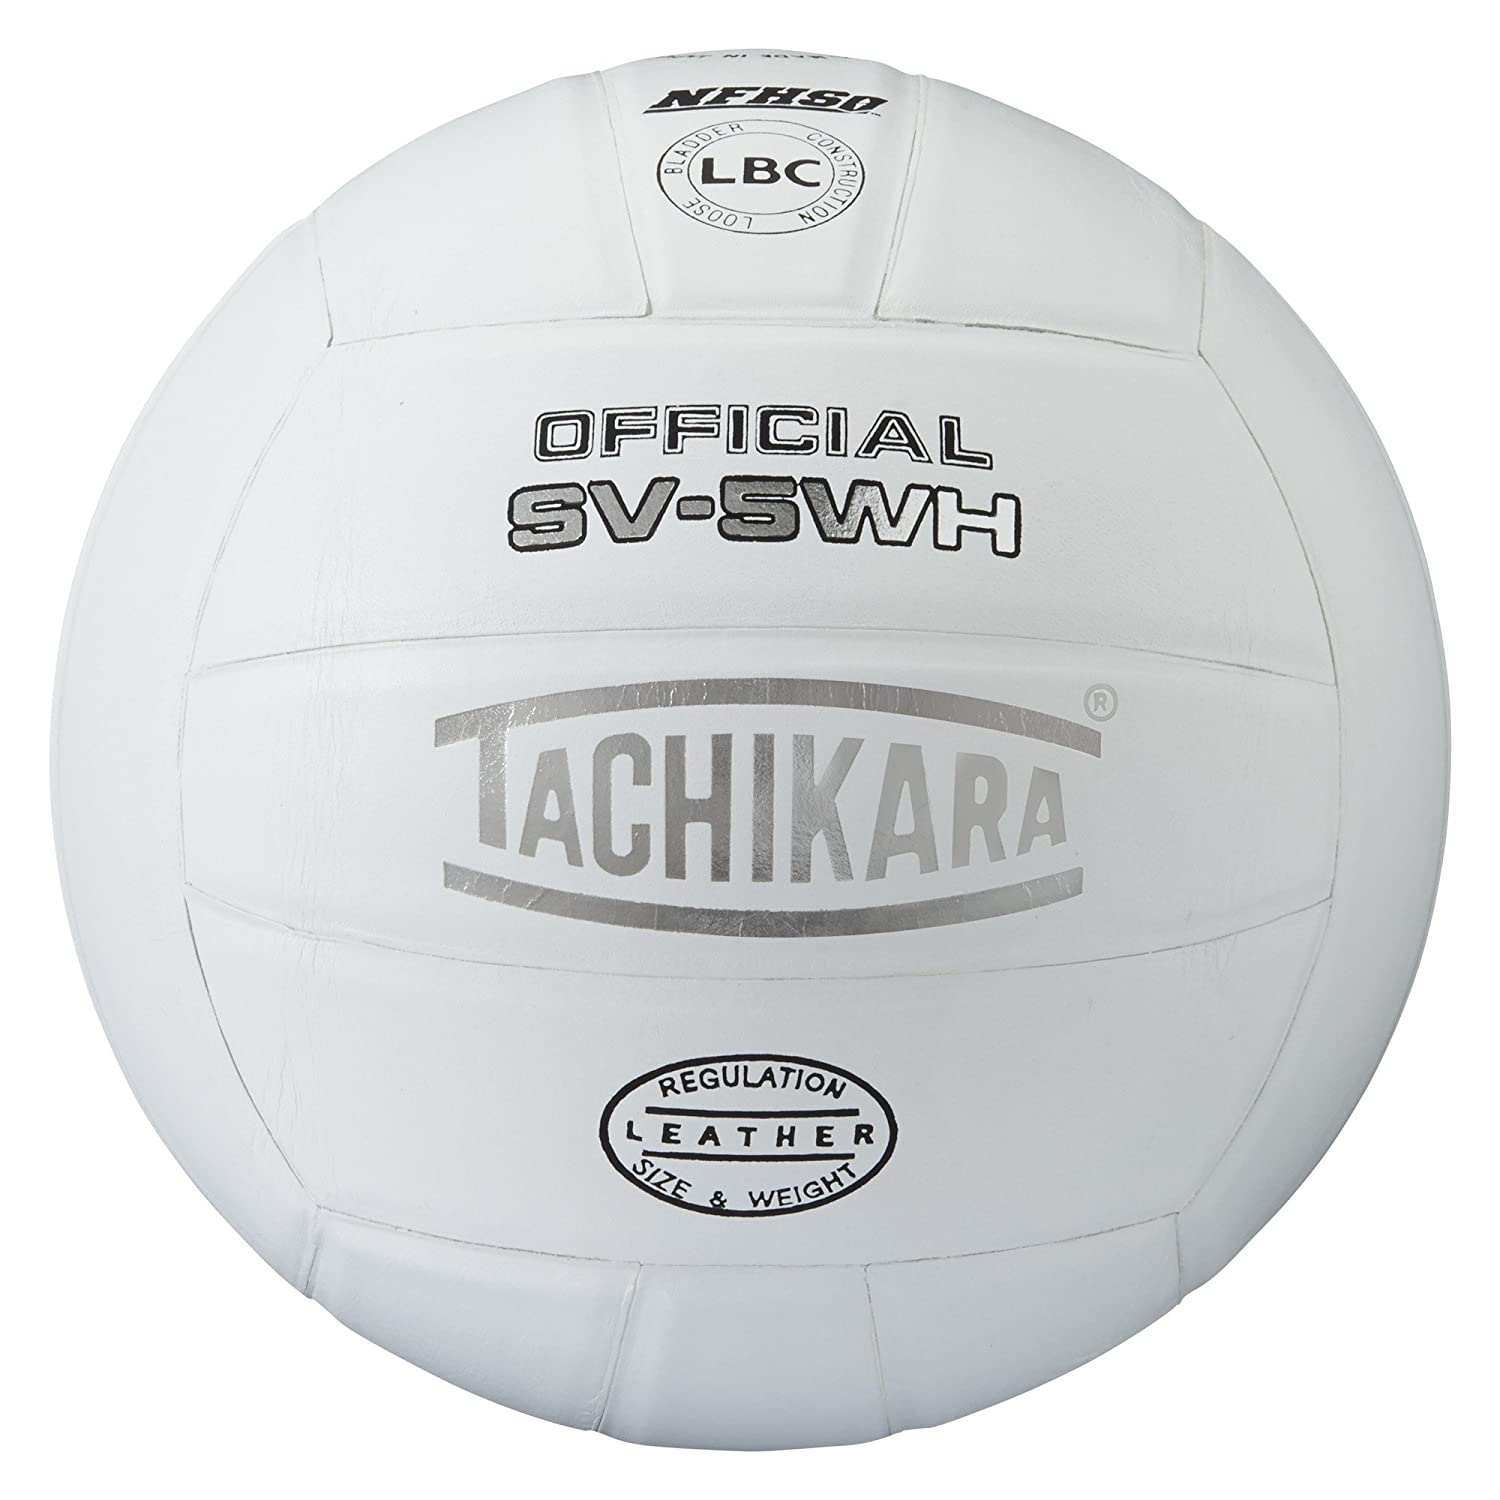 Tachikara SV5WH Concours International de cuir de qualit- sup-rieure Volleyball - Blanc B00099YIZ0